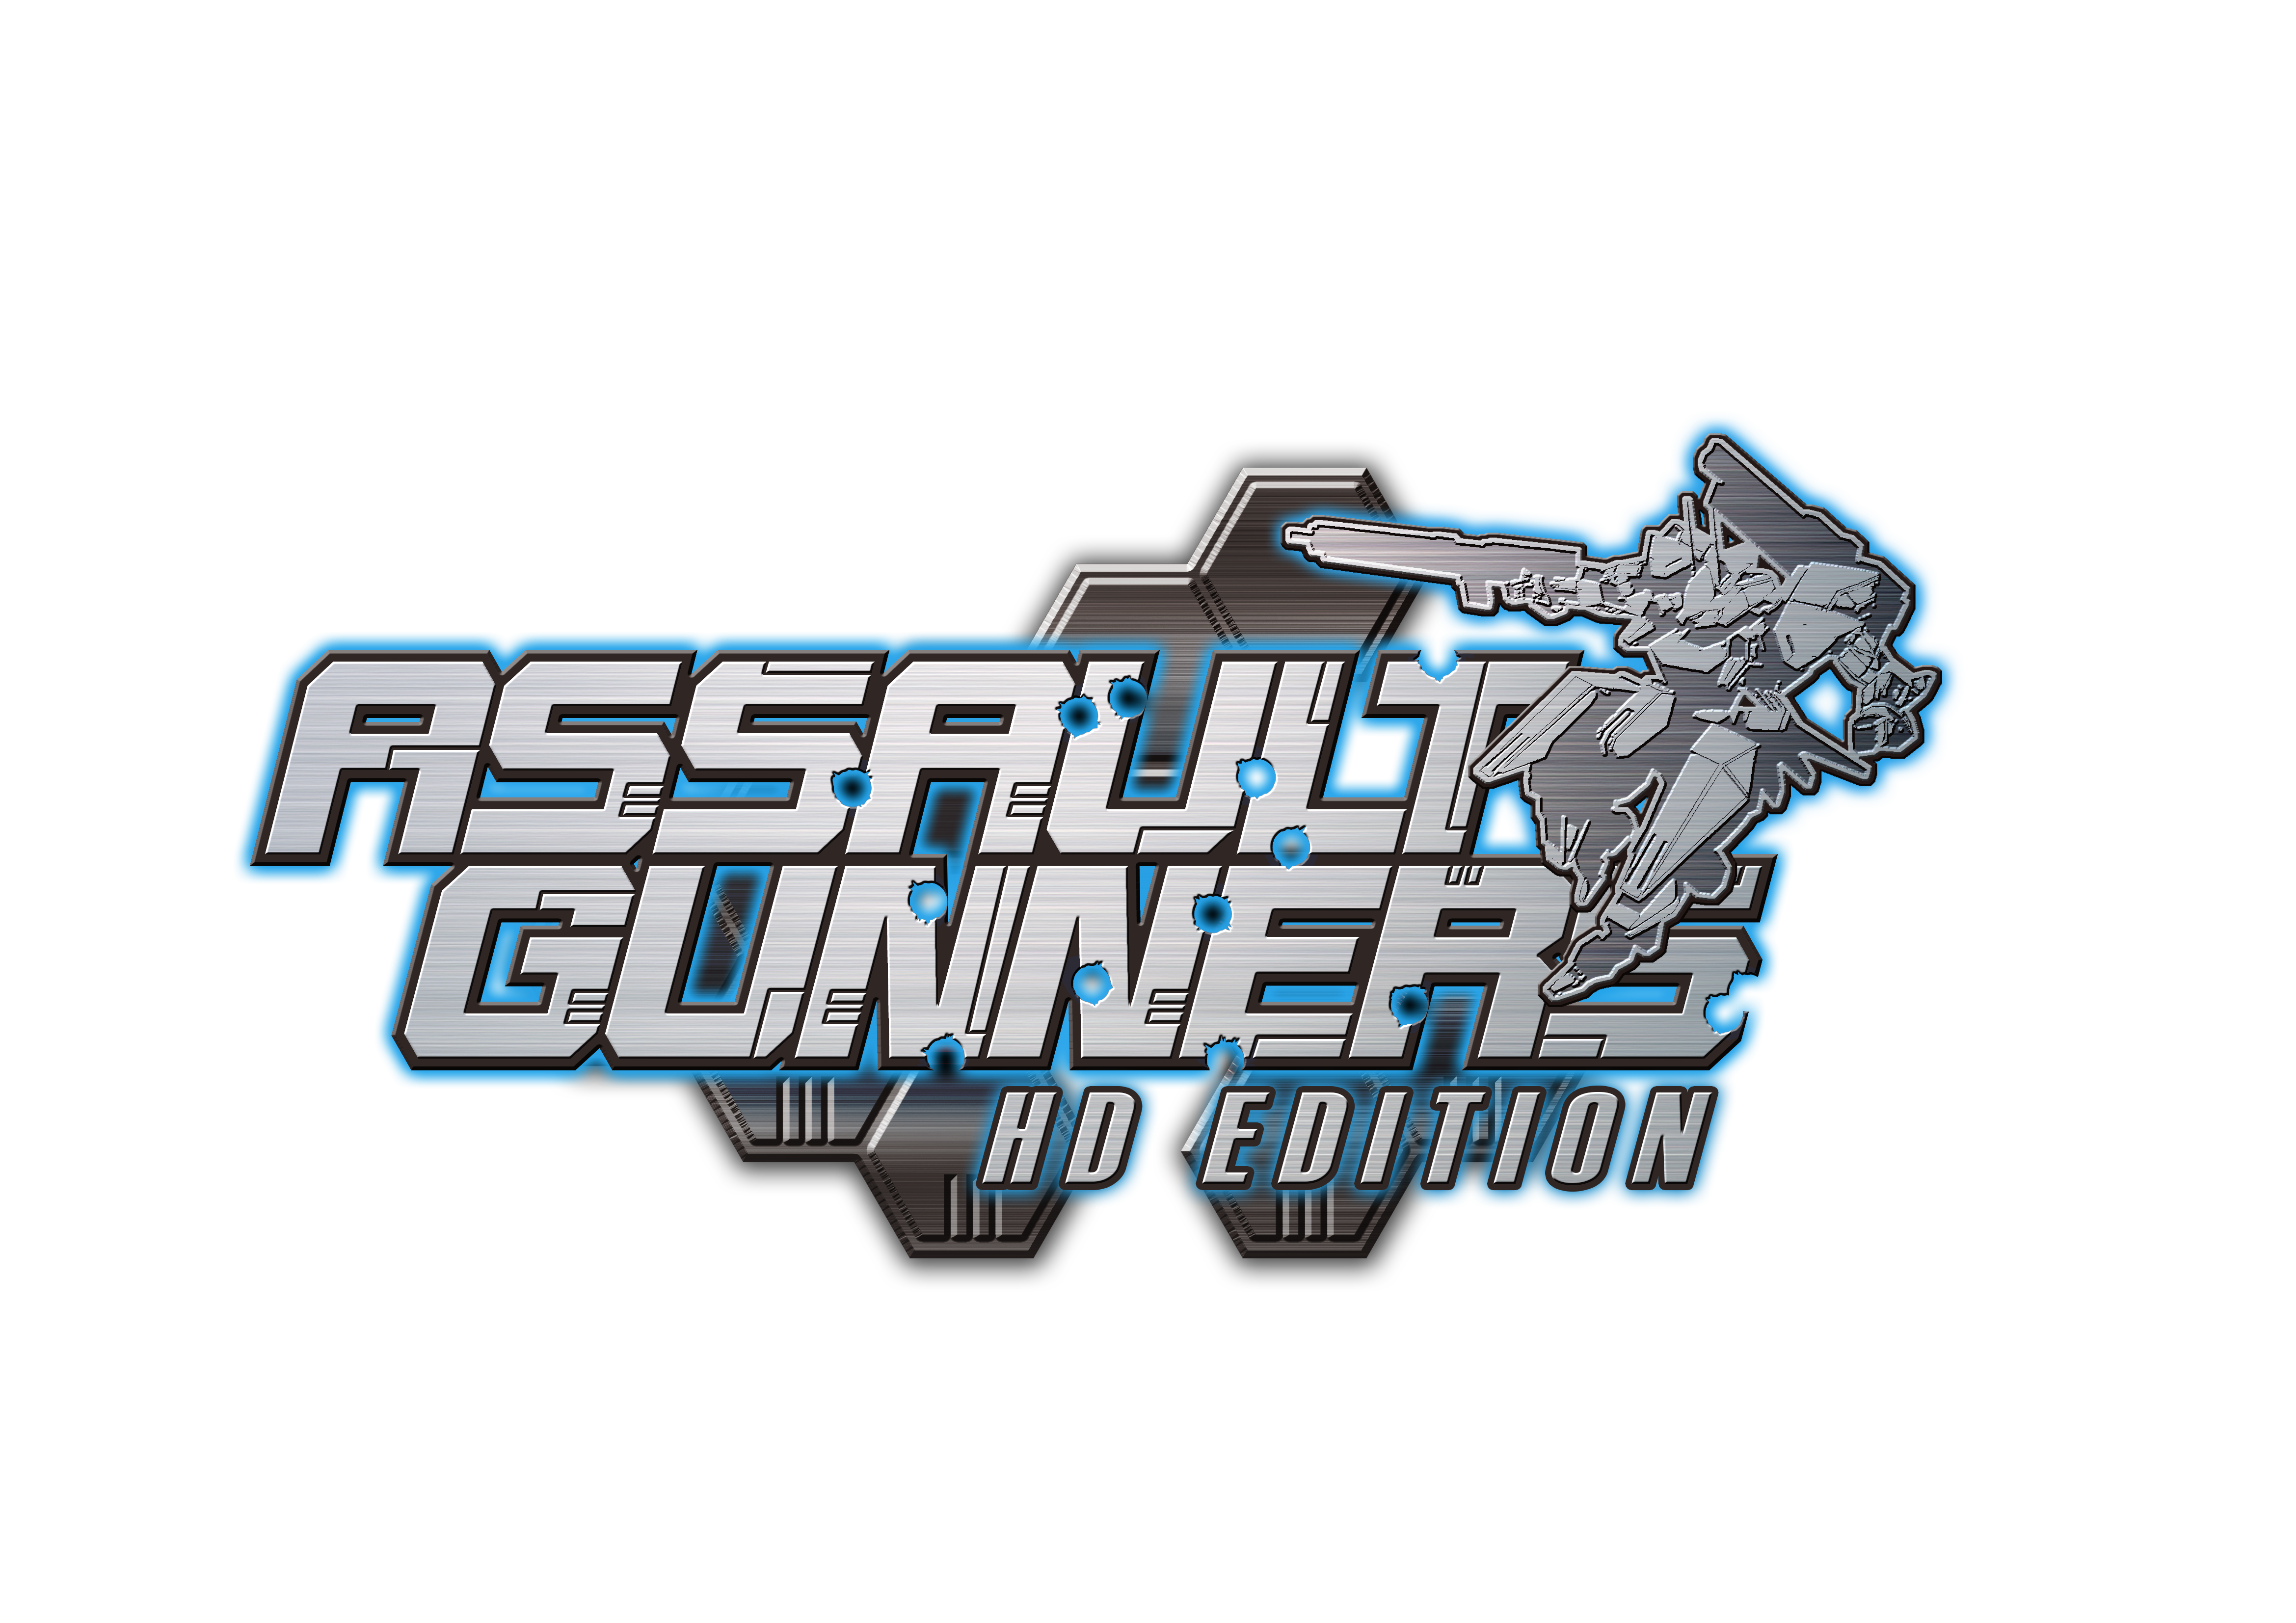 In Case You Missed It: Assault Gunners HD Out Now on PS4, X-Box One & Steam